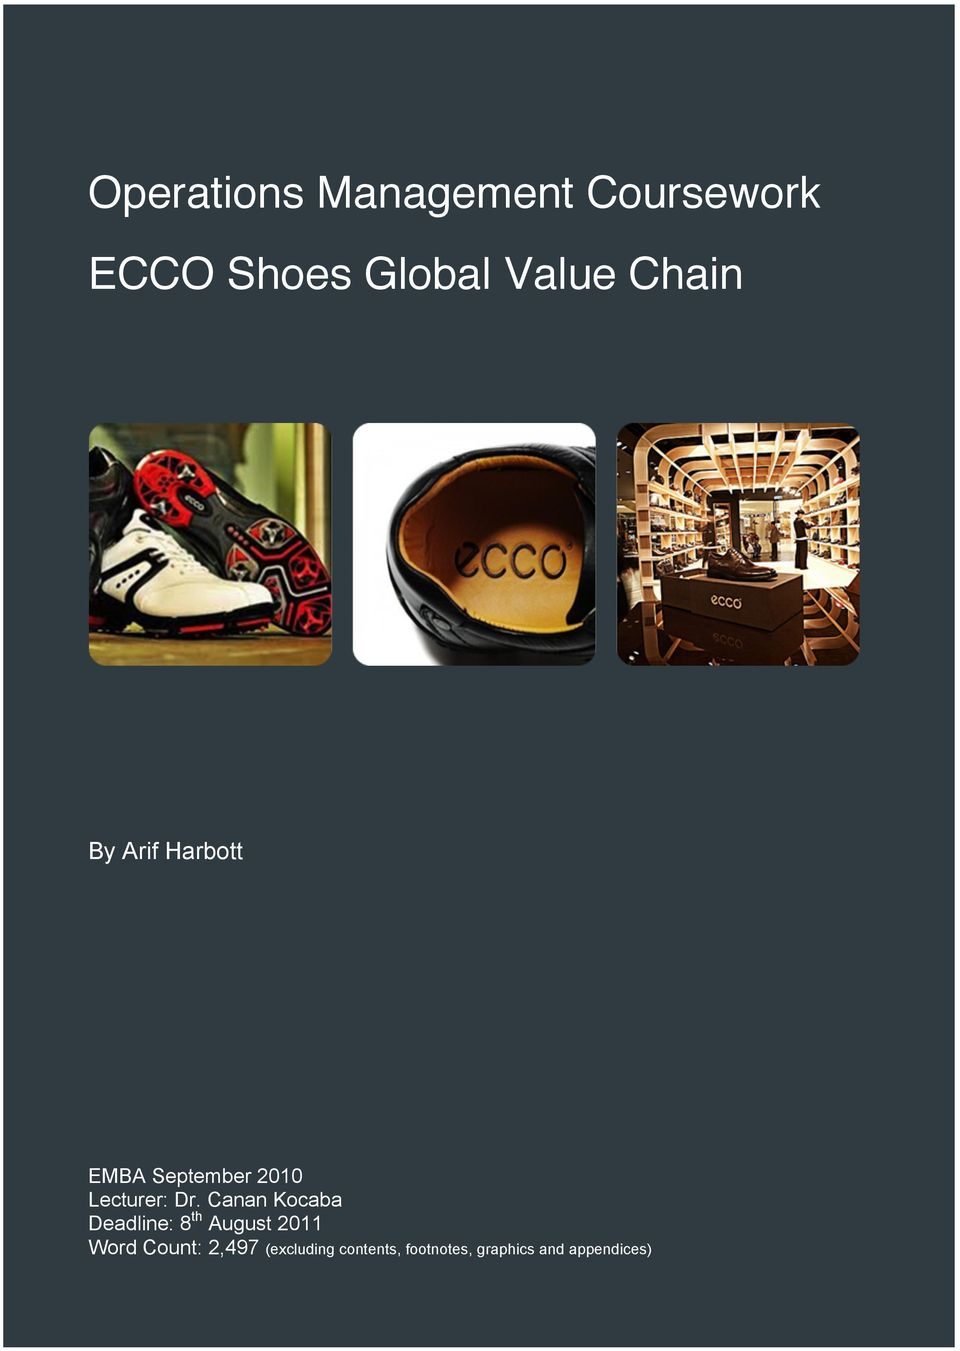 value management coursework Free supply chain management papers, essays, and research papers.